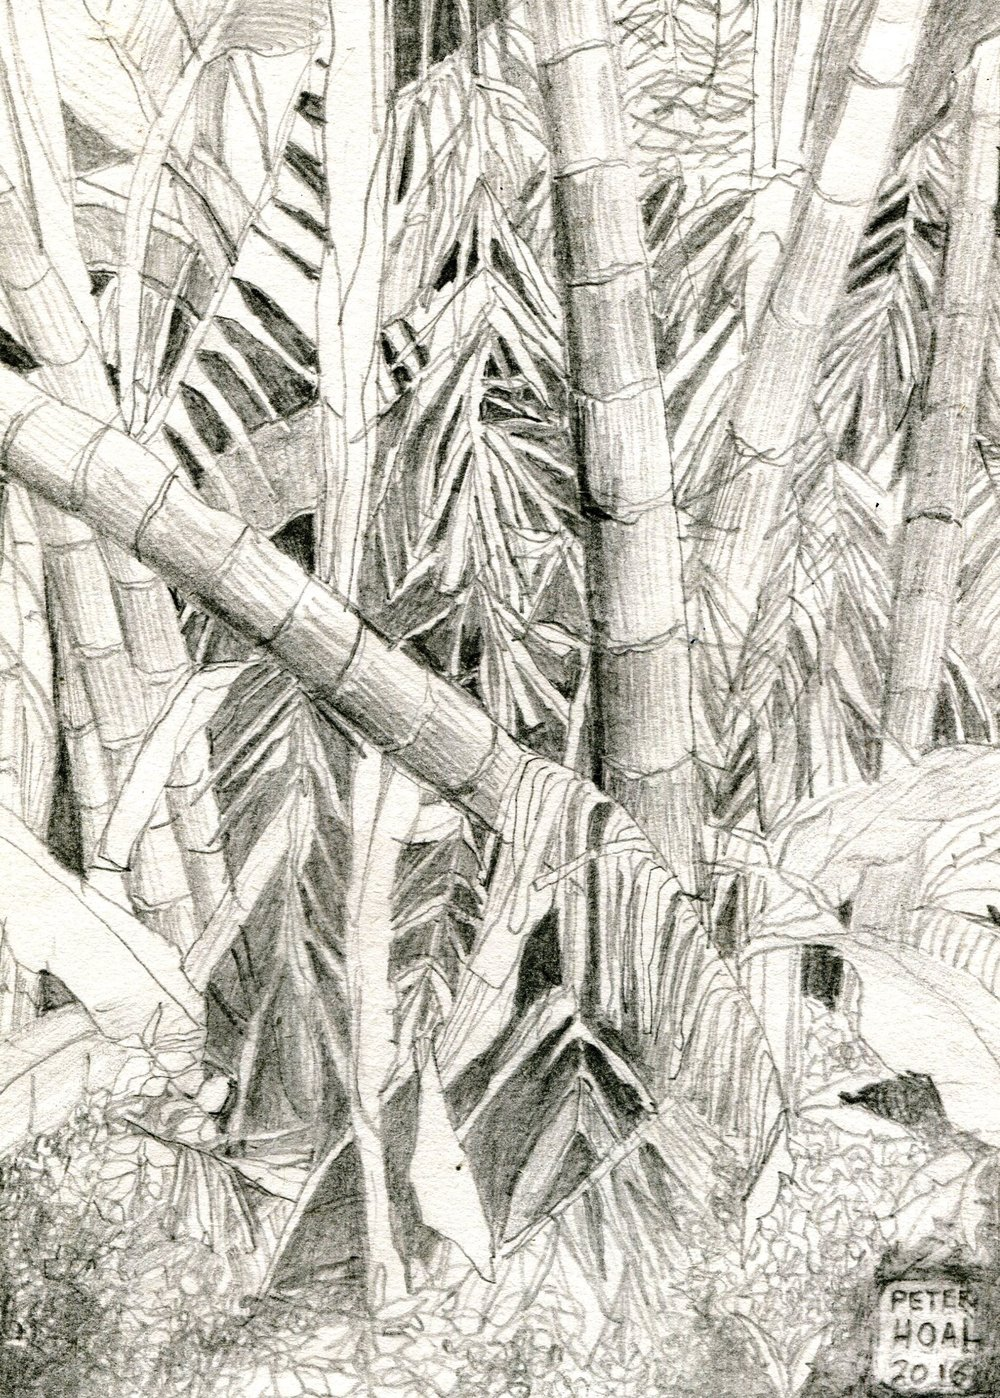 42a Peter Hoal, Bamboo Thicket, Pencil drawing on paper